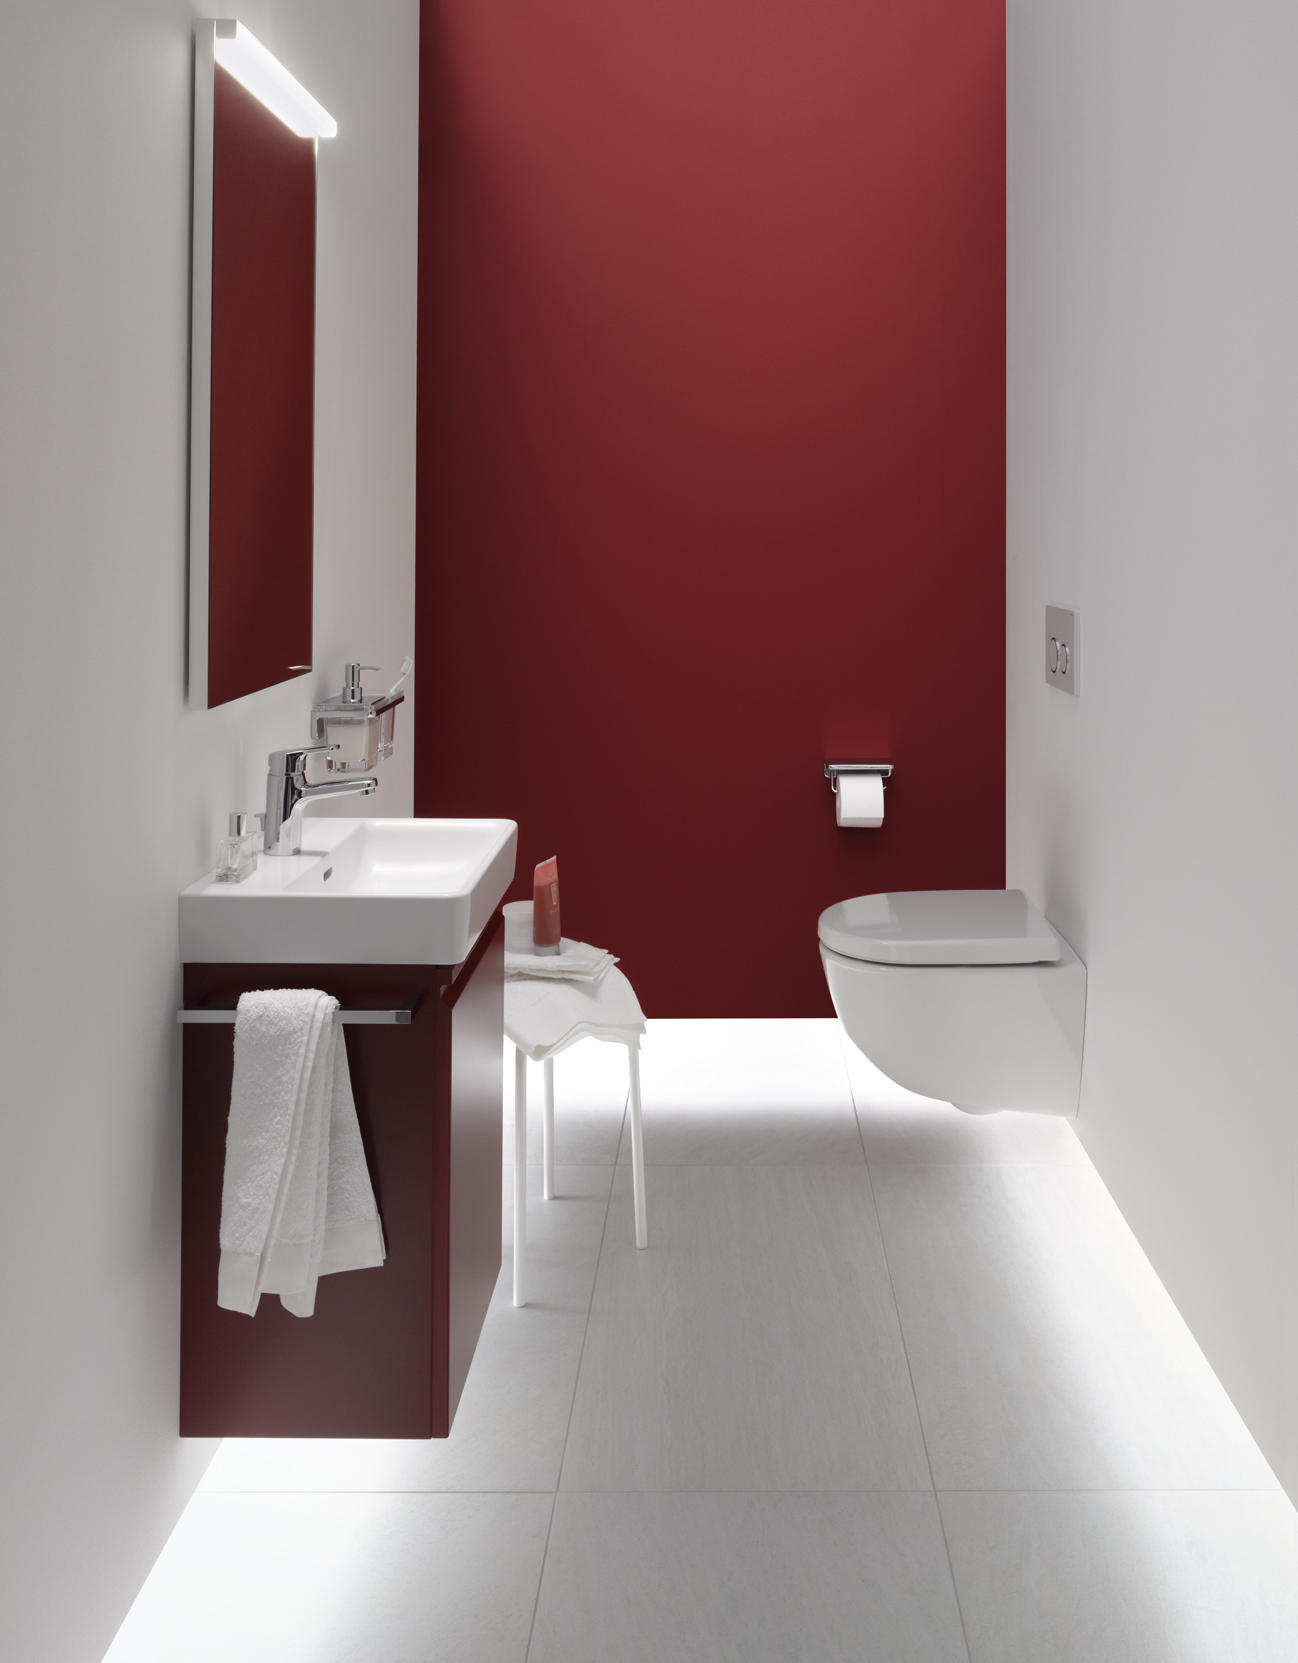 laufen pro s wall hung wc washdown toilets from. Black Bedroom Furniture Sets. Home Design Ideas